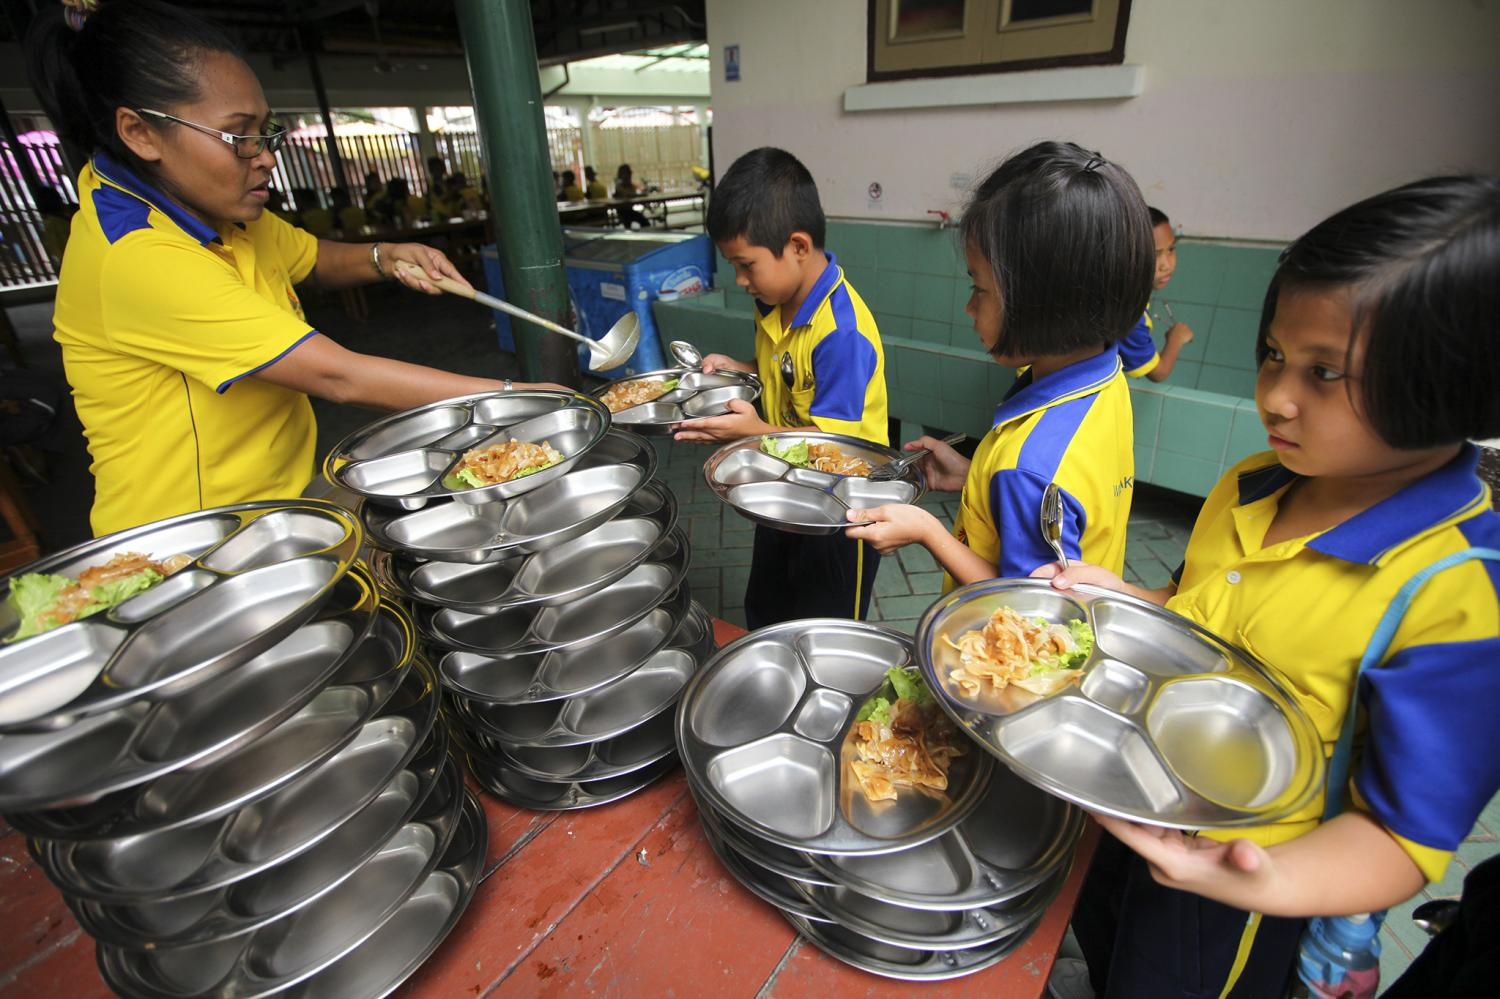 Students at Wat Makut Kasattriyaram School in Bangkok queue up for their midday meal. The school guarantees healthy food via its well-managed school lunch project.?(Photo by Patipat Janthong)